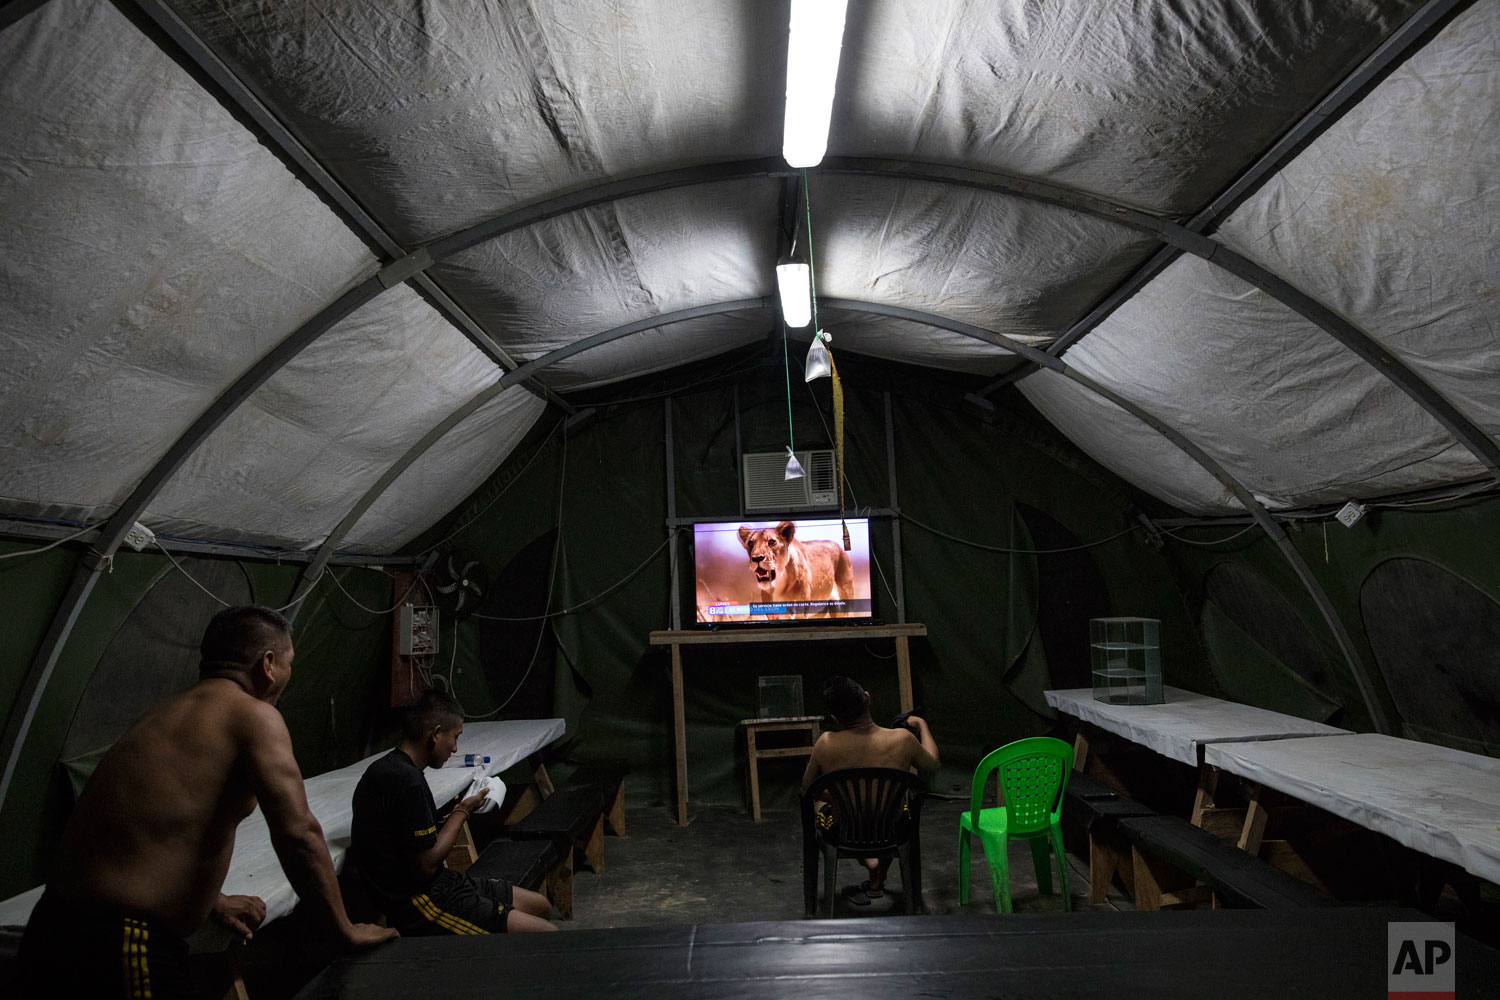 In this March 31, 2019 photo published May 15, soldiers watch a nature show in their tent at the Balata military and police base in Peru's Tambopata province. The military bases will remain at least through mid-2021, when the term of the current government ends.(AP Photo/Rodrigo Abd)